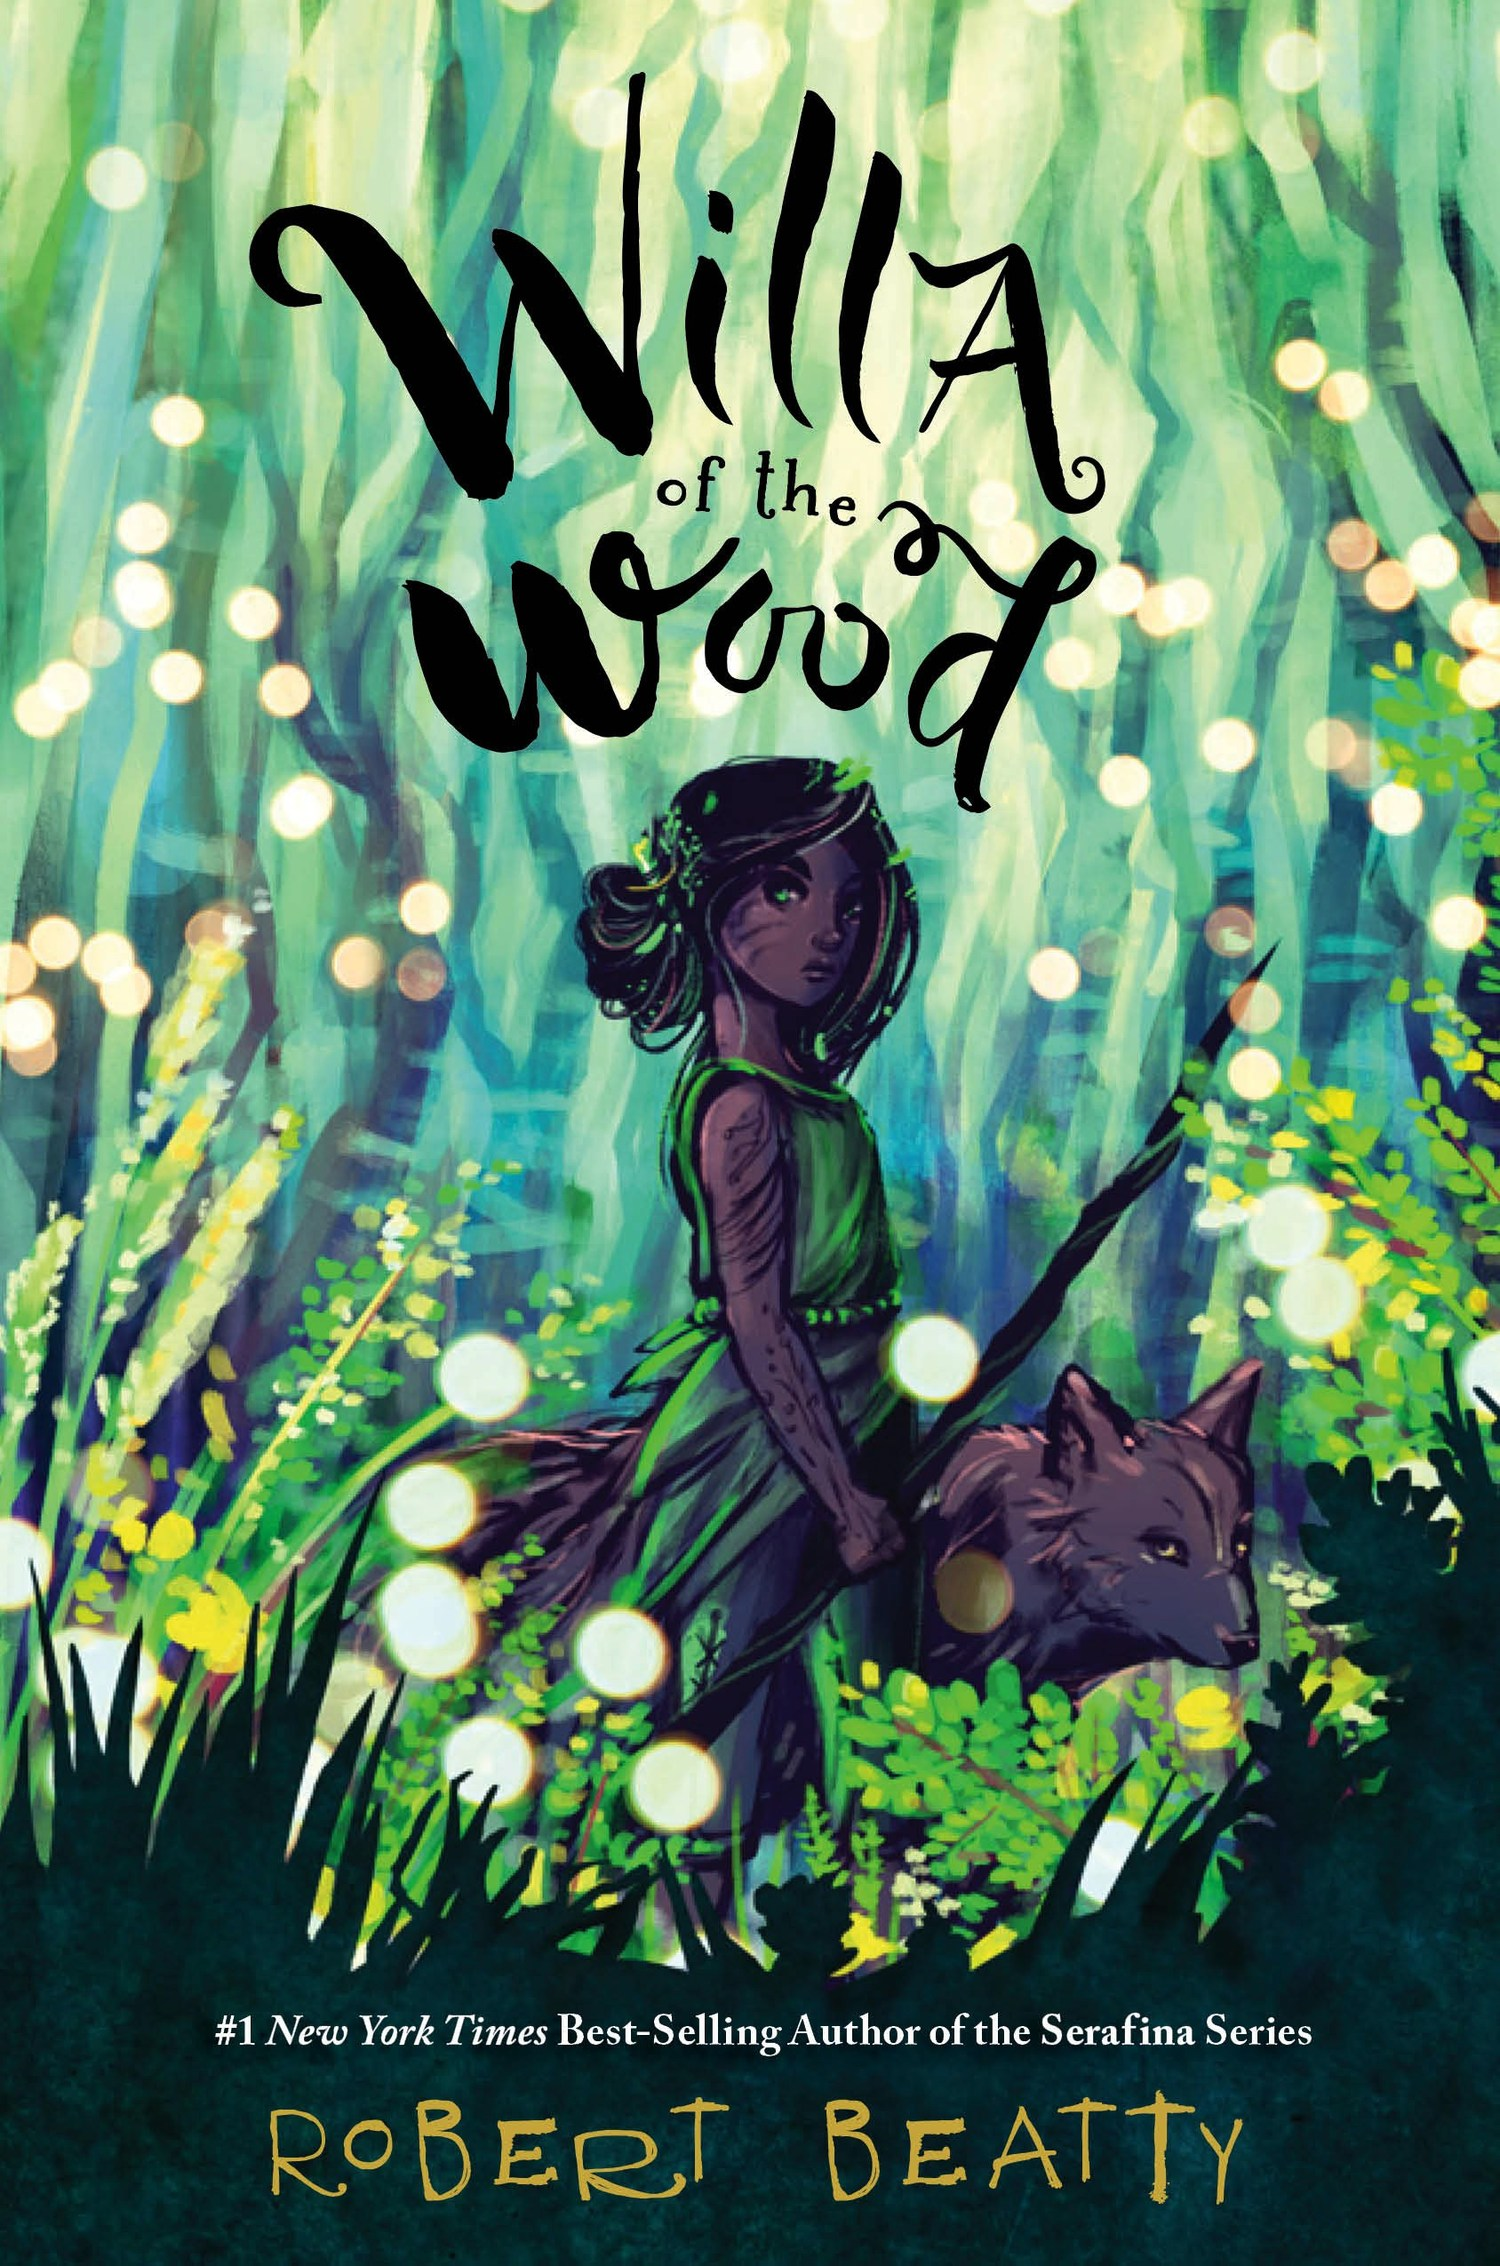 BWW Review: WILLA OF THE WOOD by Robert Beatty